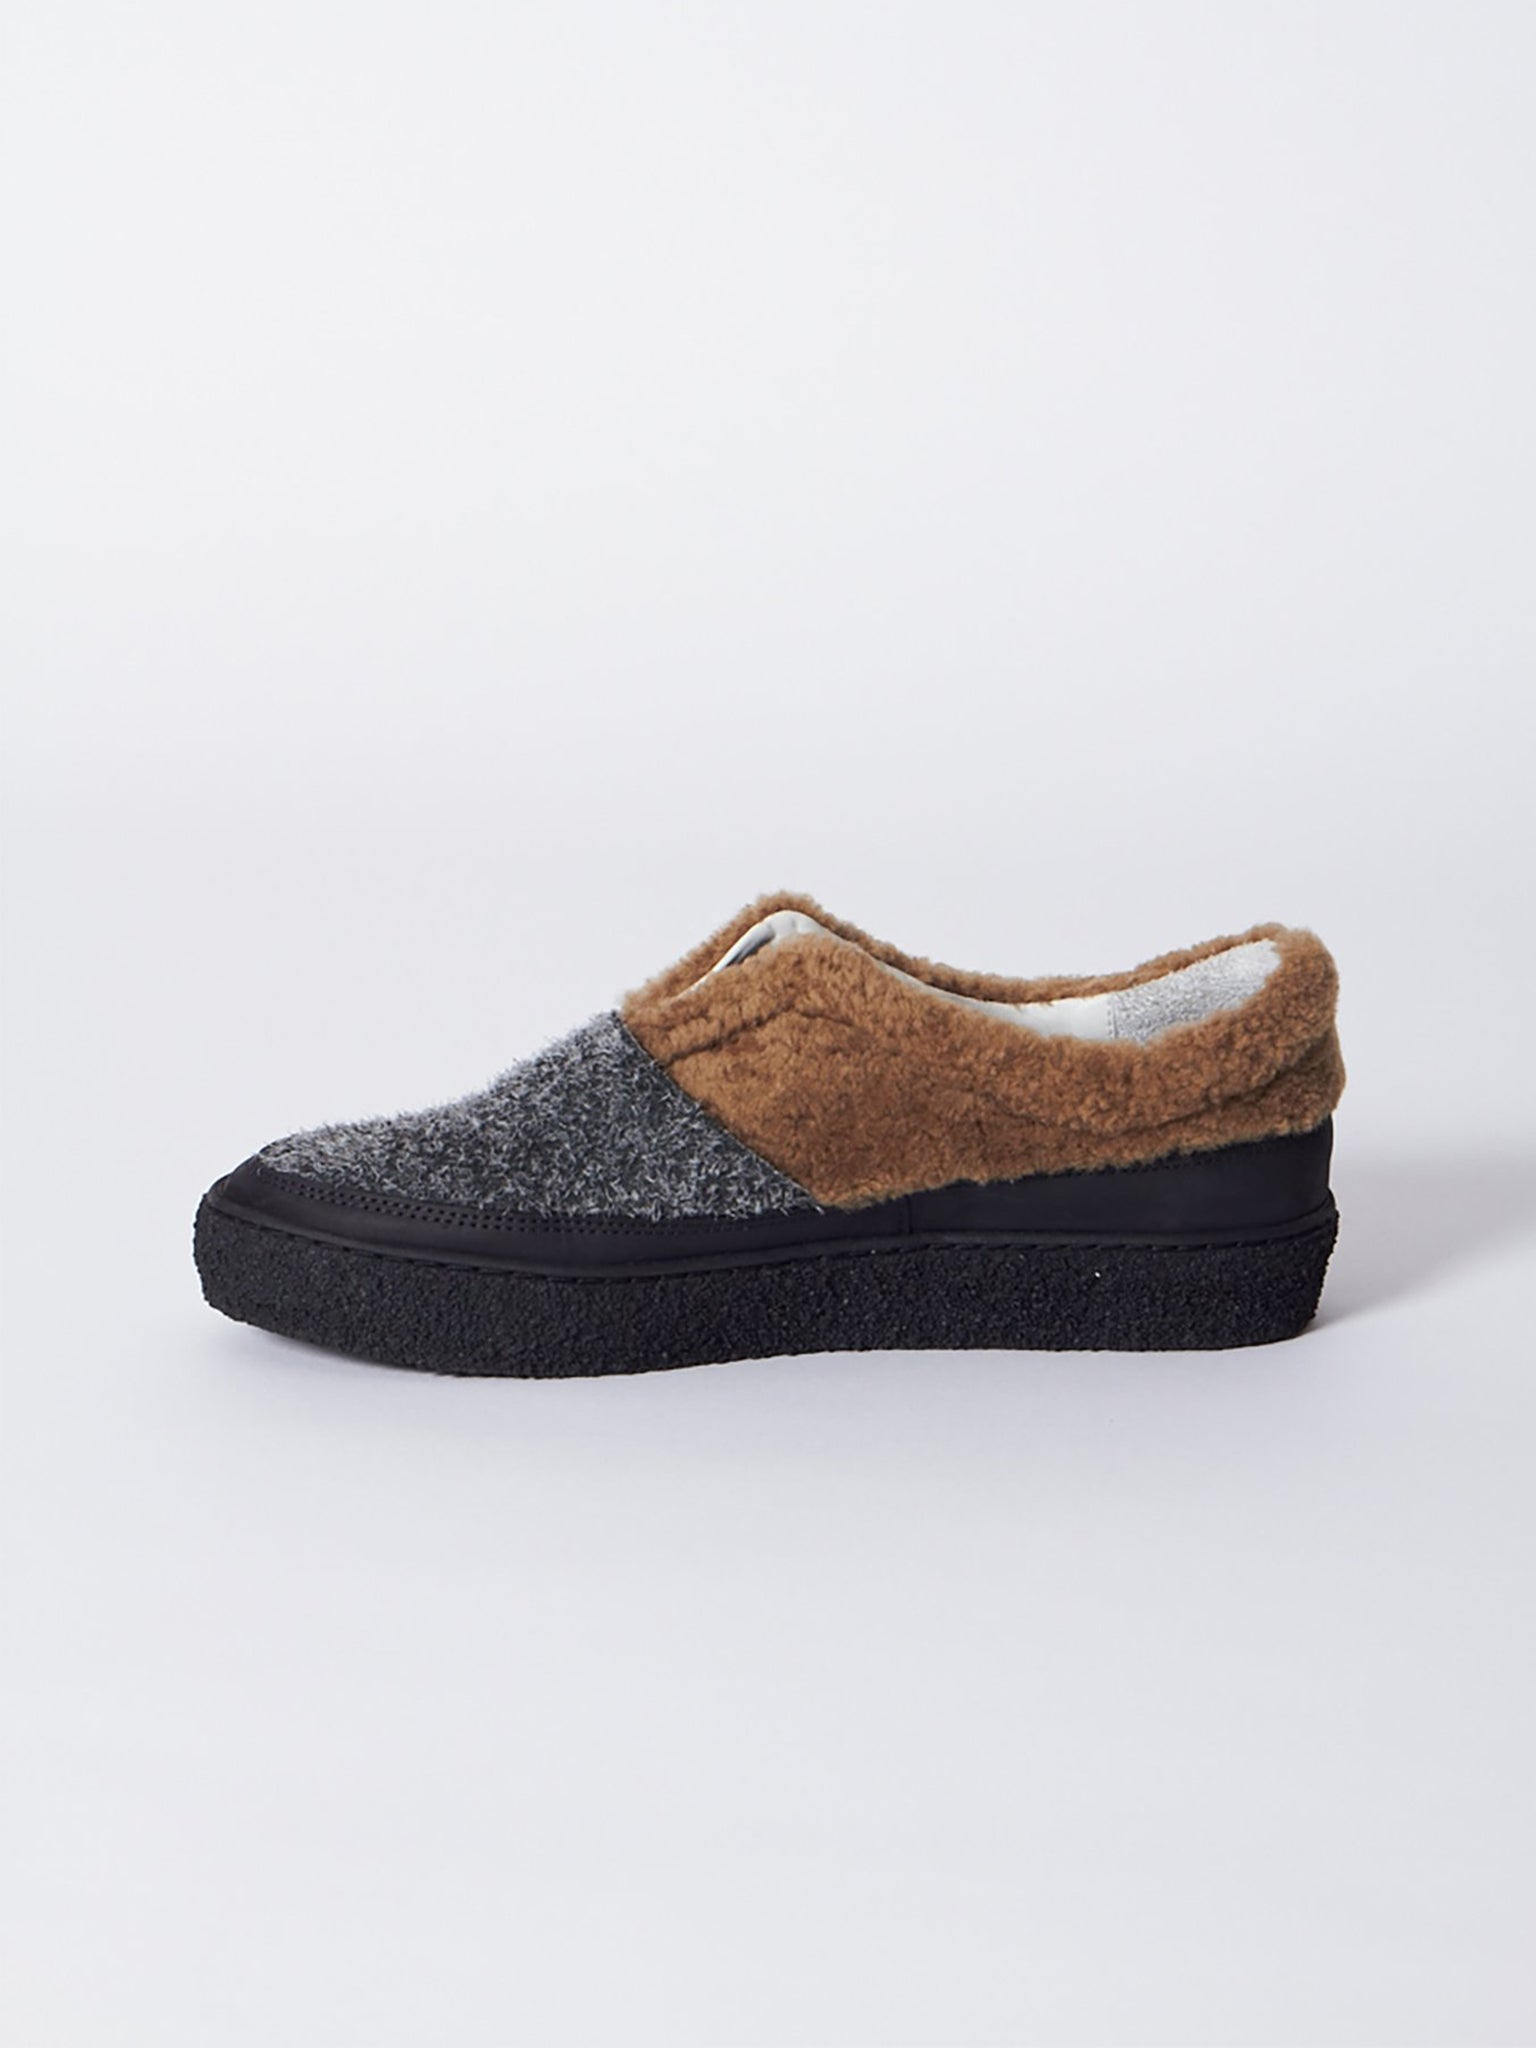 Reality Studio Boa Slip Ons Brown Anthracite Black